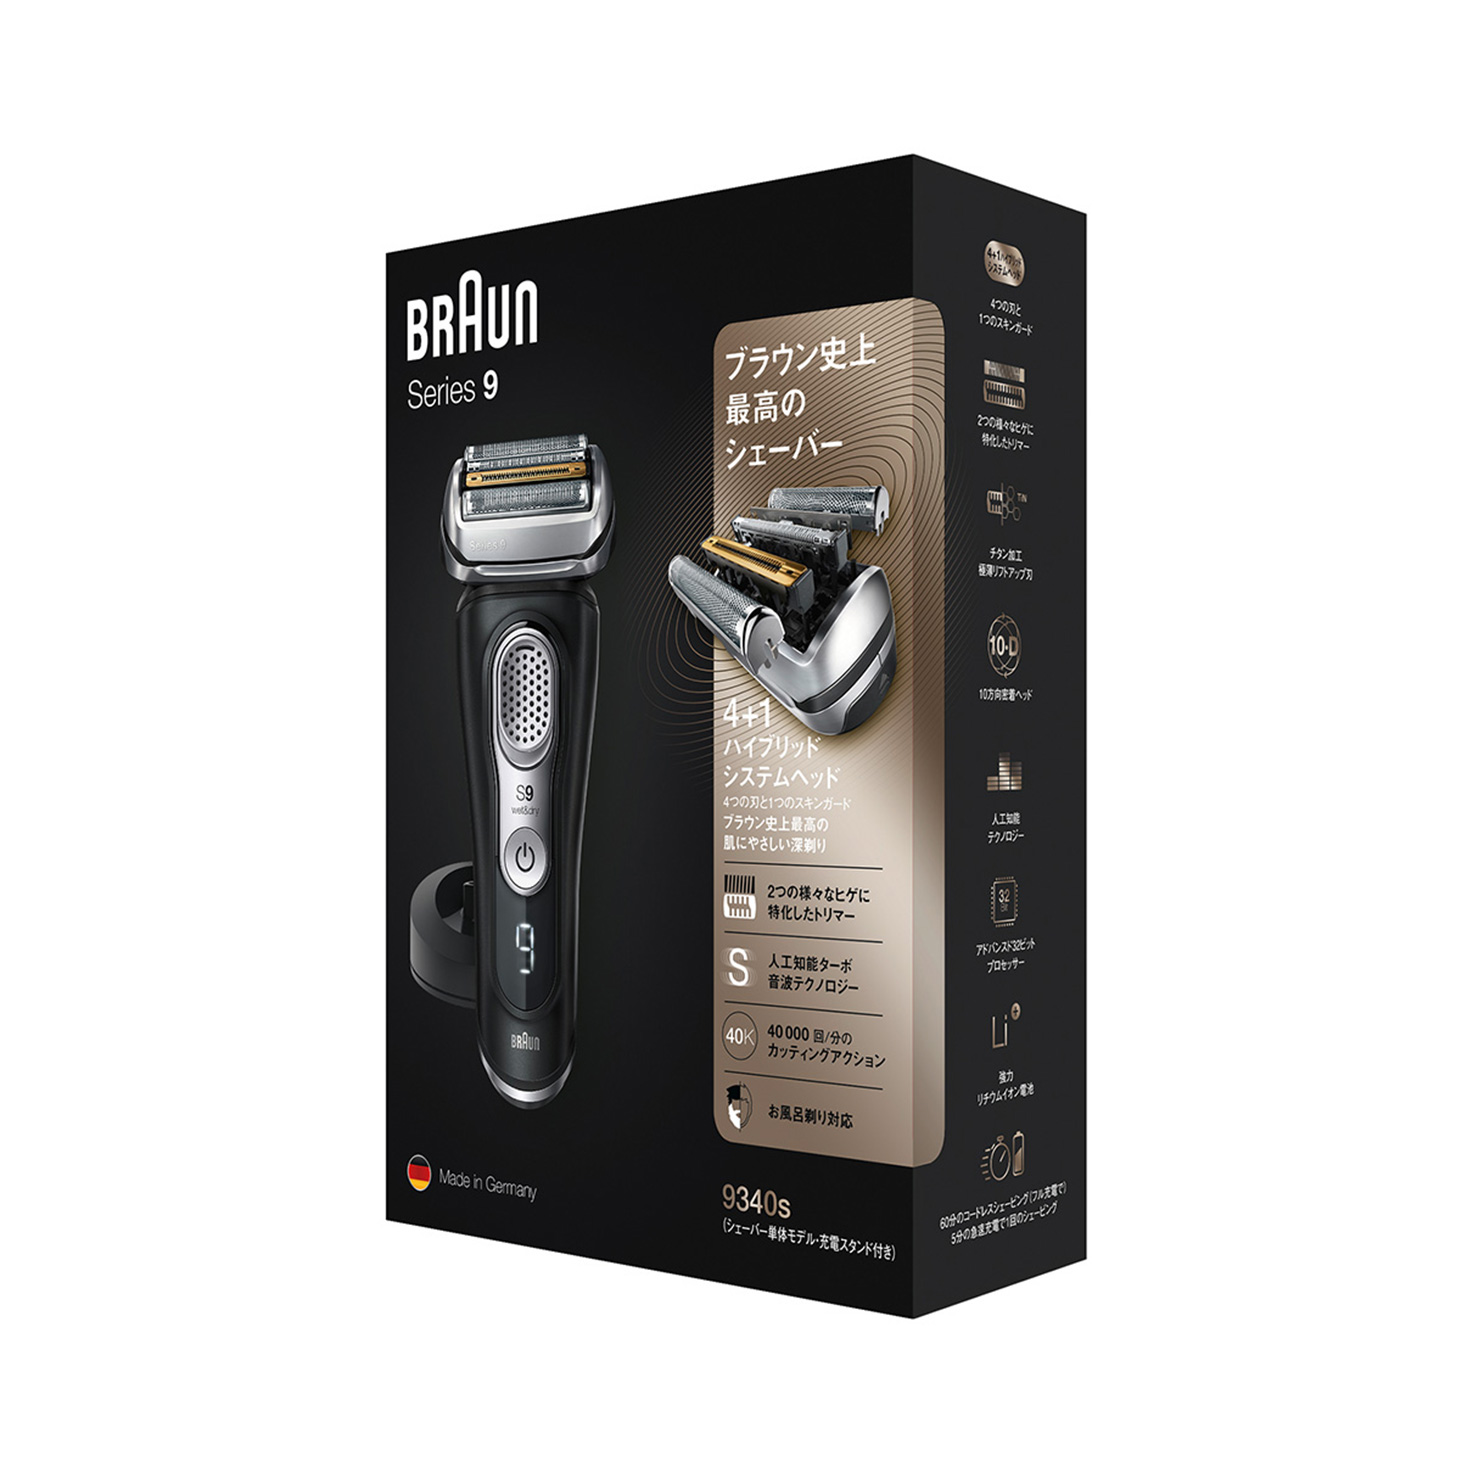 Series 9 9340s shaver - Packaging